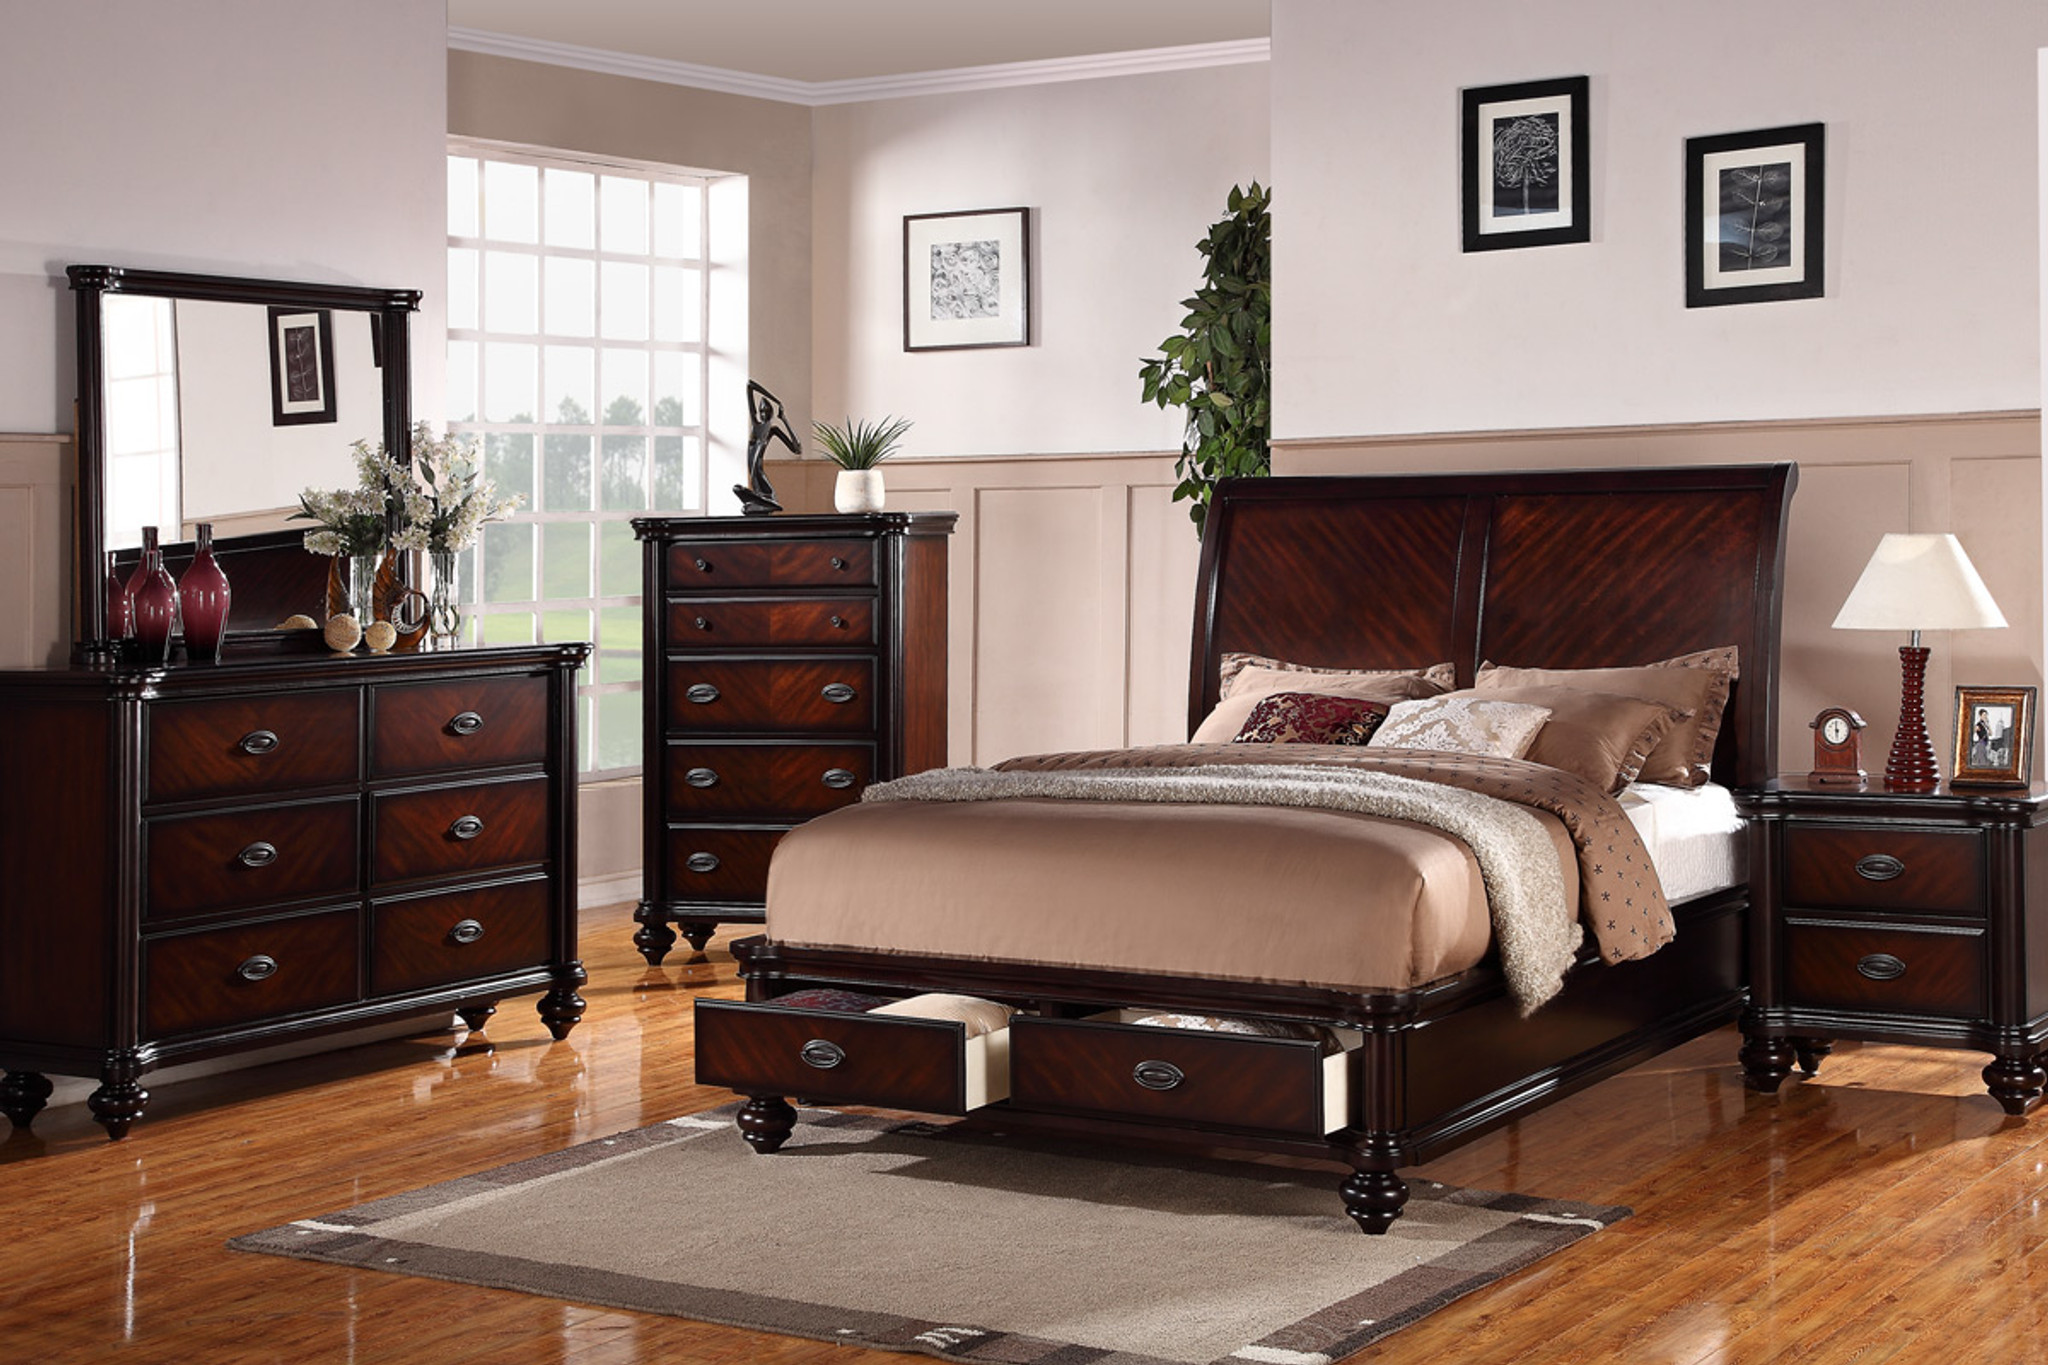 Kassa Mall Home Furniture F9190 King Queen Size Bedroom Bed Frame Dark Brown Finish With Storage